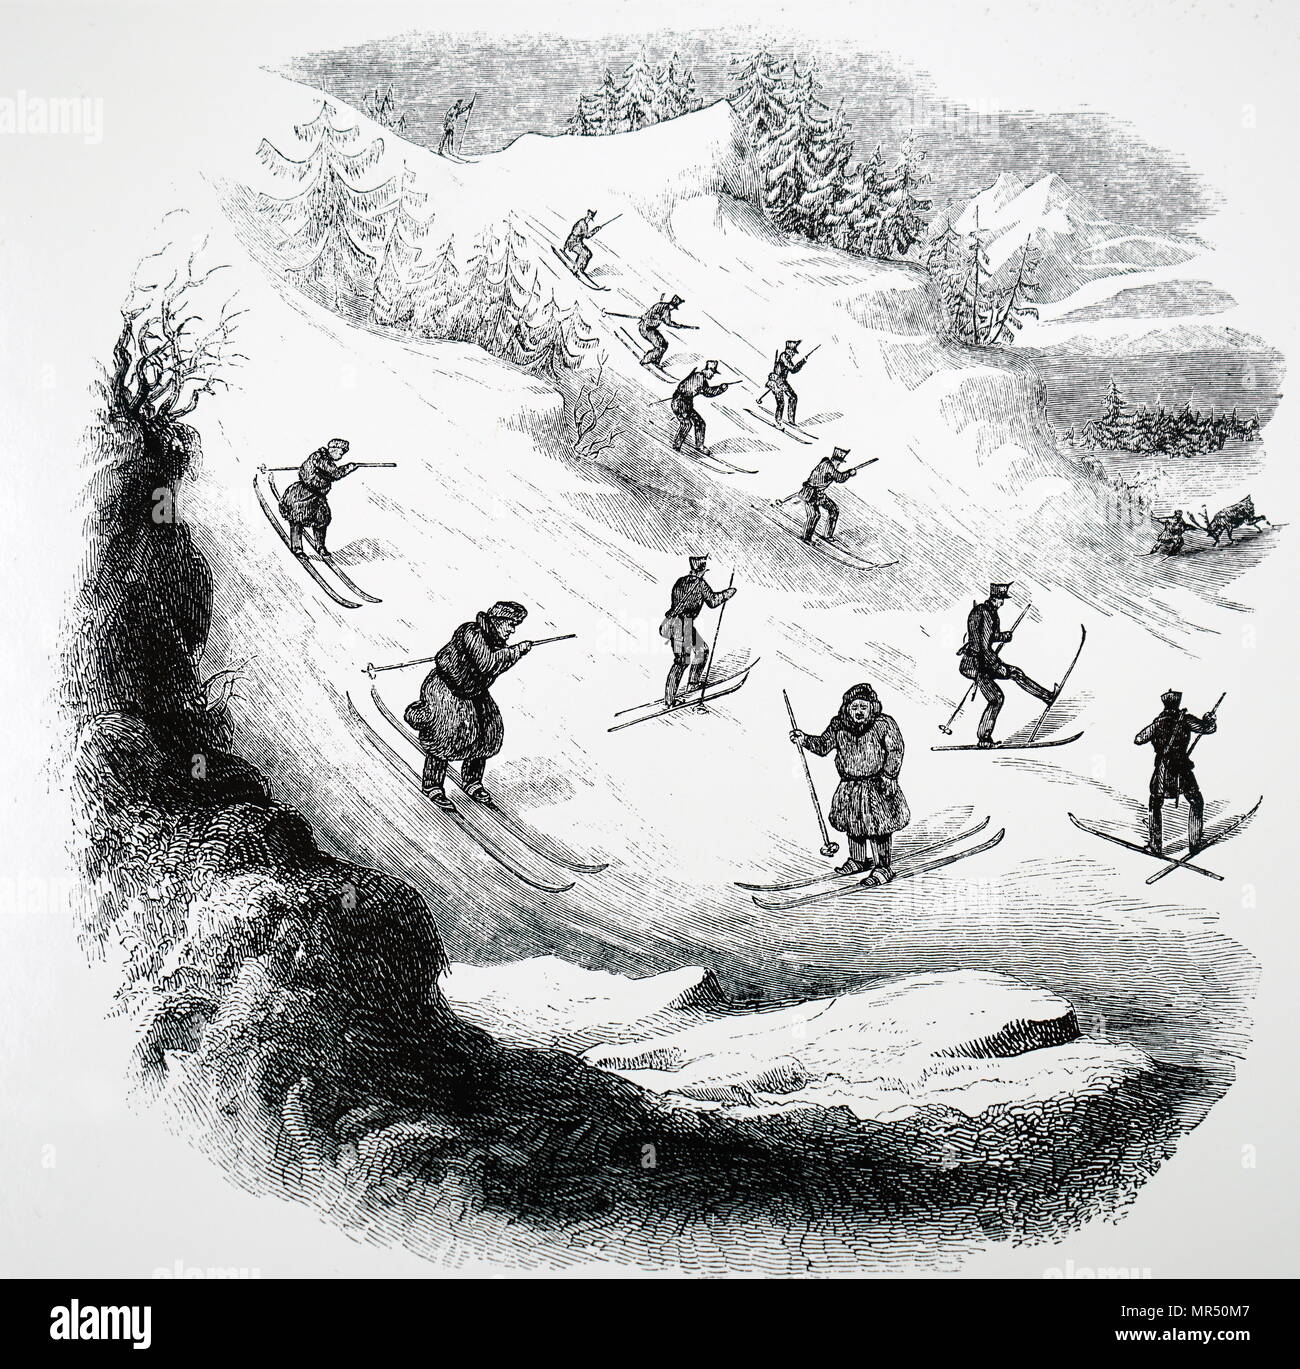 Illustration depicting members of the Norwegian Army being taught advance skiing techniques. All soldiers are trained in ski combat. Dated 19th century - Stock Image